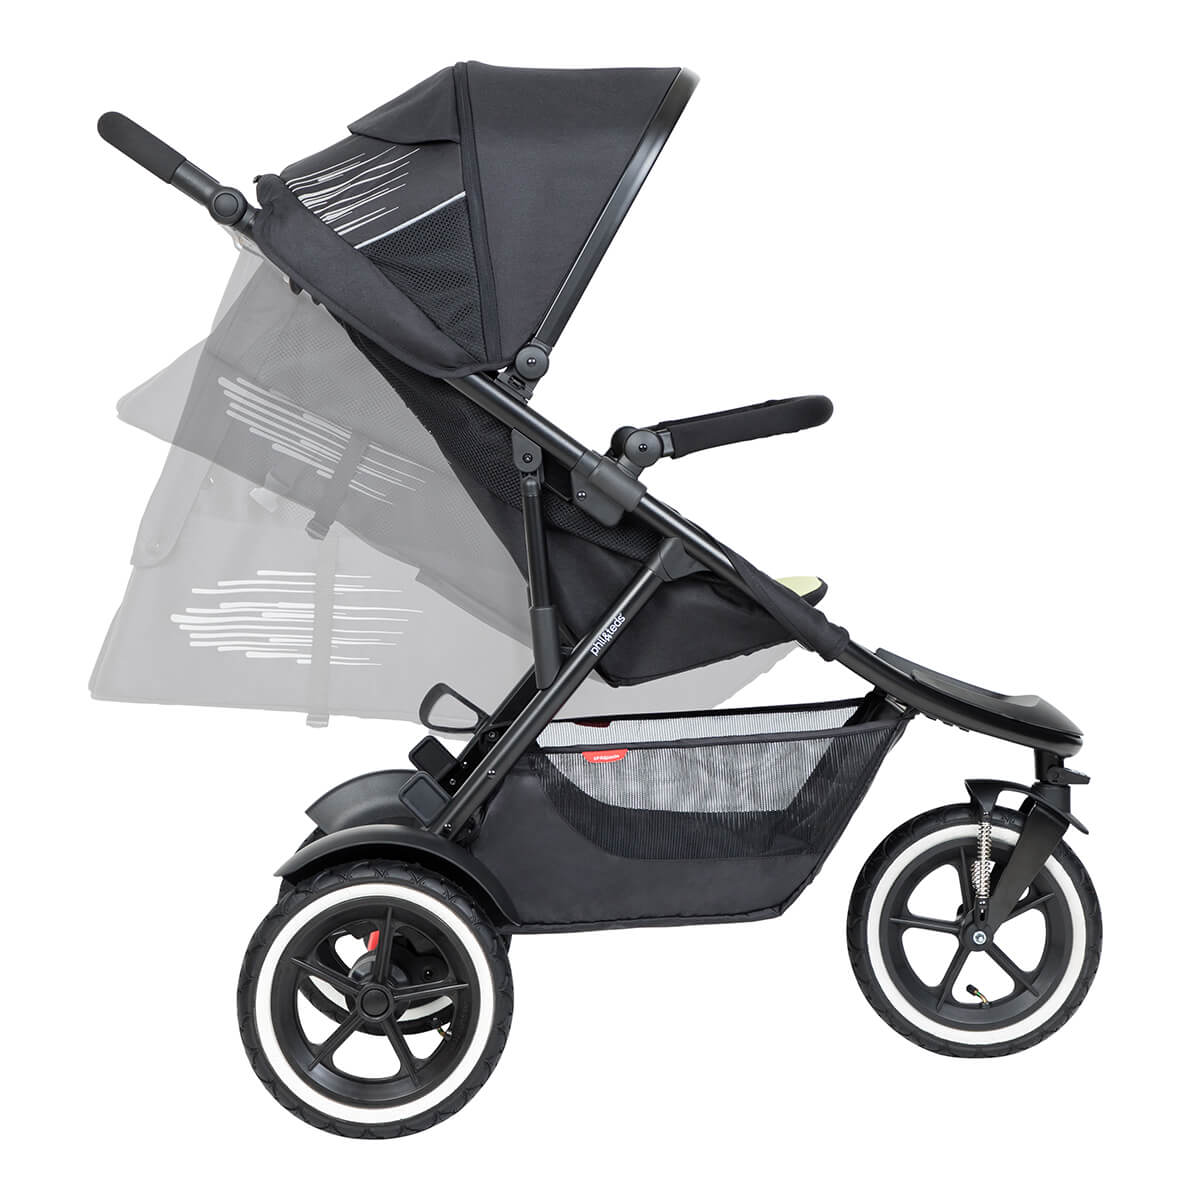 https://cdn.accentuate.io/4546157871209/19119322628201/philteds-sport-buggy-can-recline-in-multiple-angles-including-full-recline-for-newborn-baby-v1625778310757.jpg?1200x1200